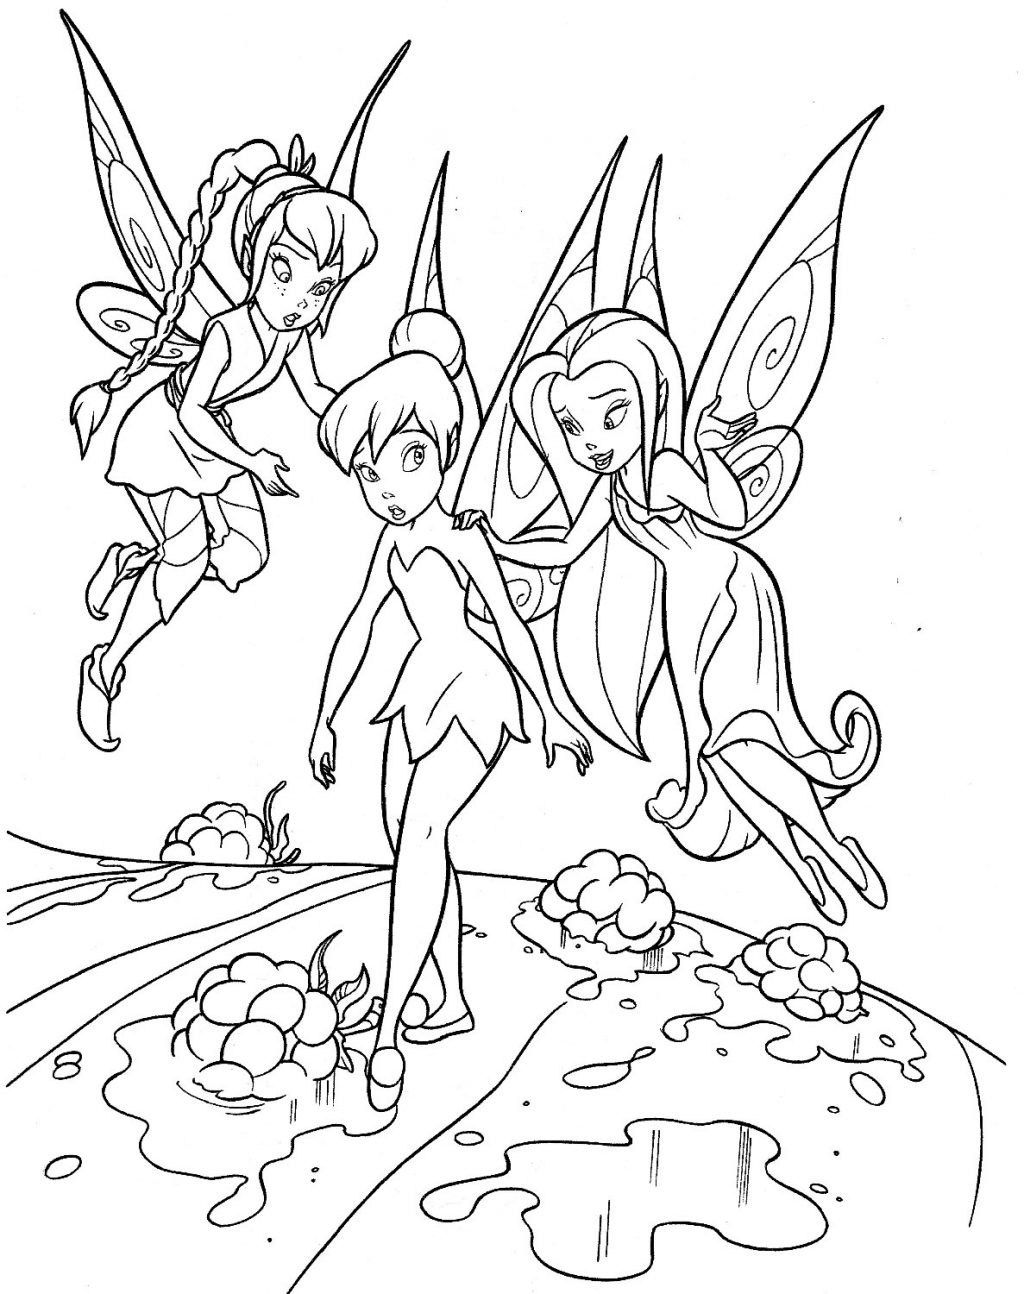 coloring tinkerbell cartoon tinkerbell coloring pages download and print tinkerbell cartoon tinkerbell coloring